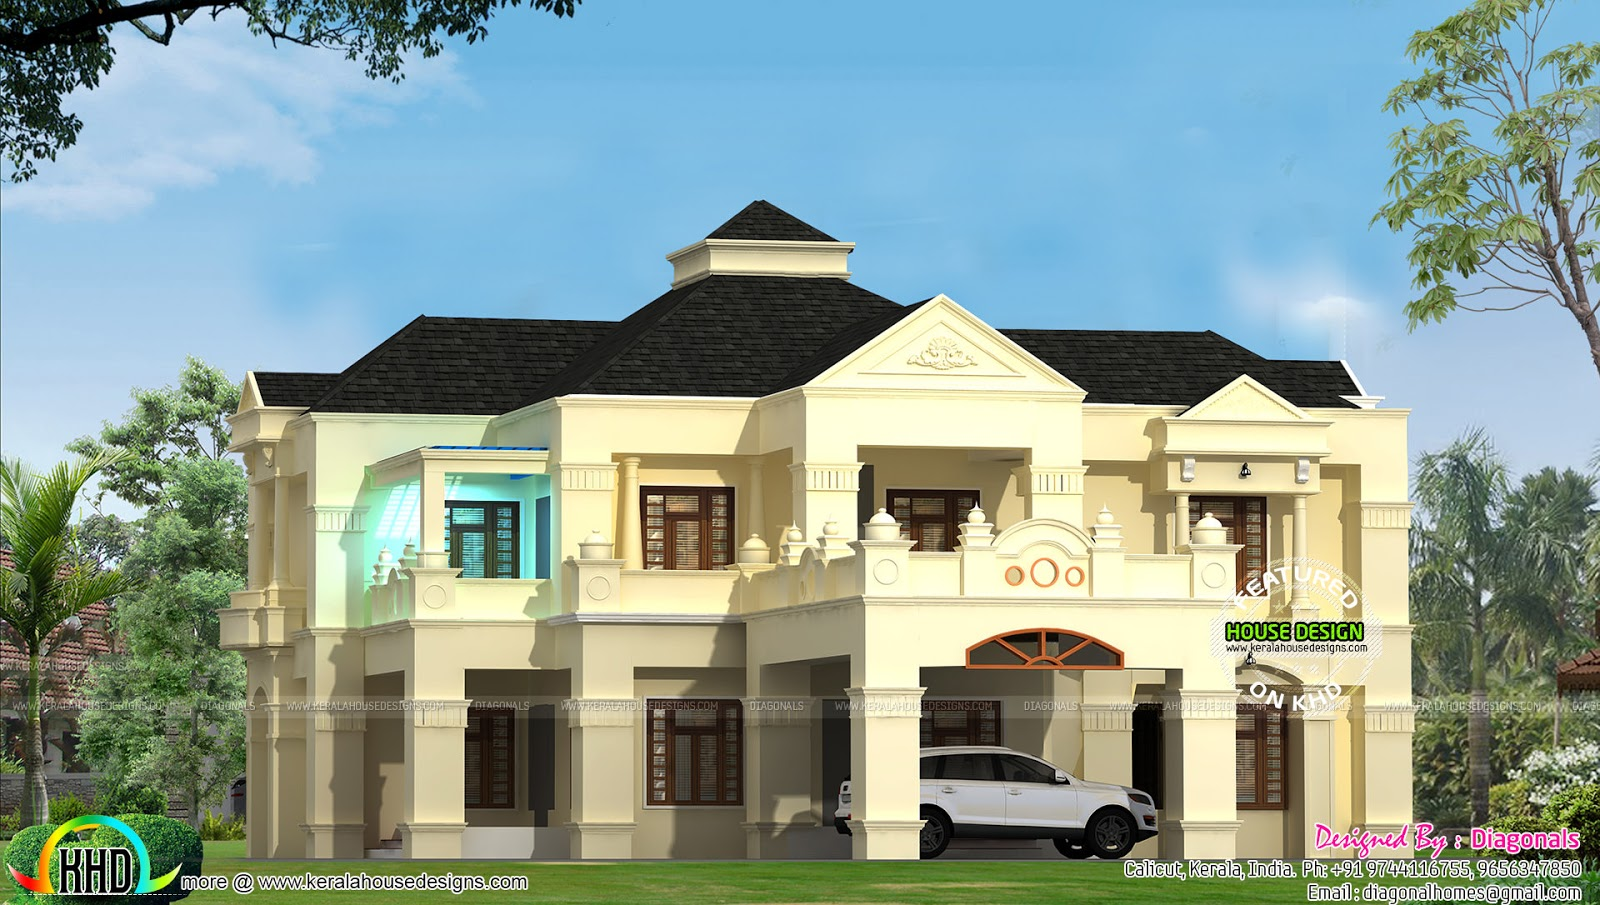 Colonial style 4500 sq ft home design kerala home design for Colonial style house plans kerala